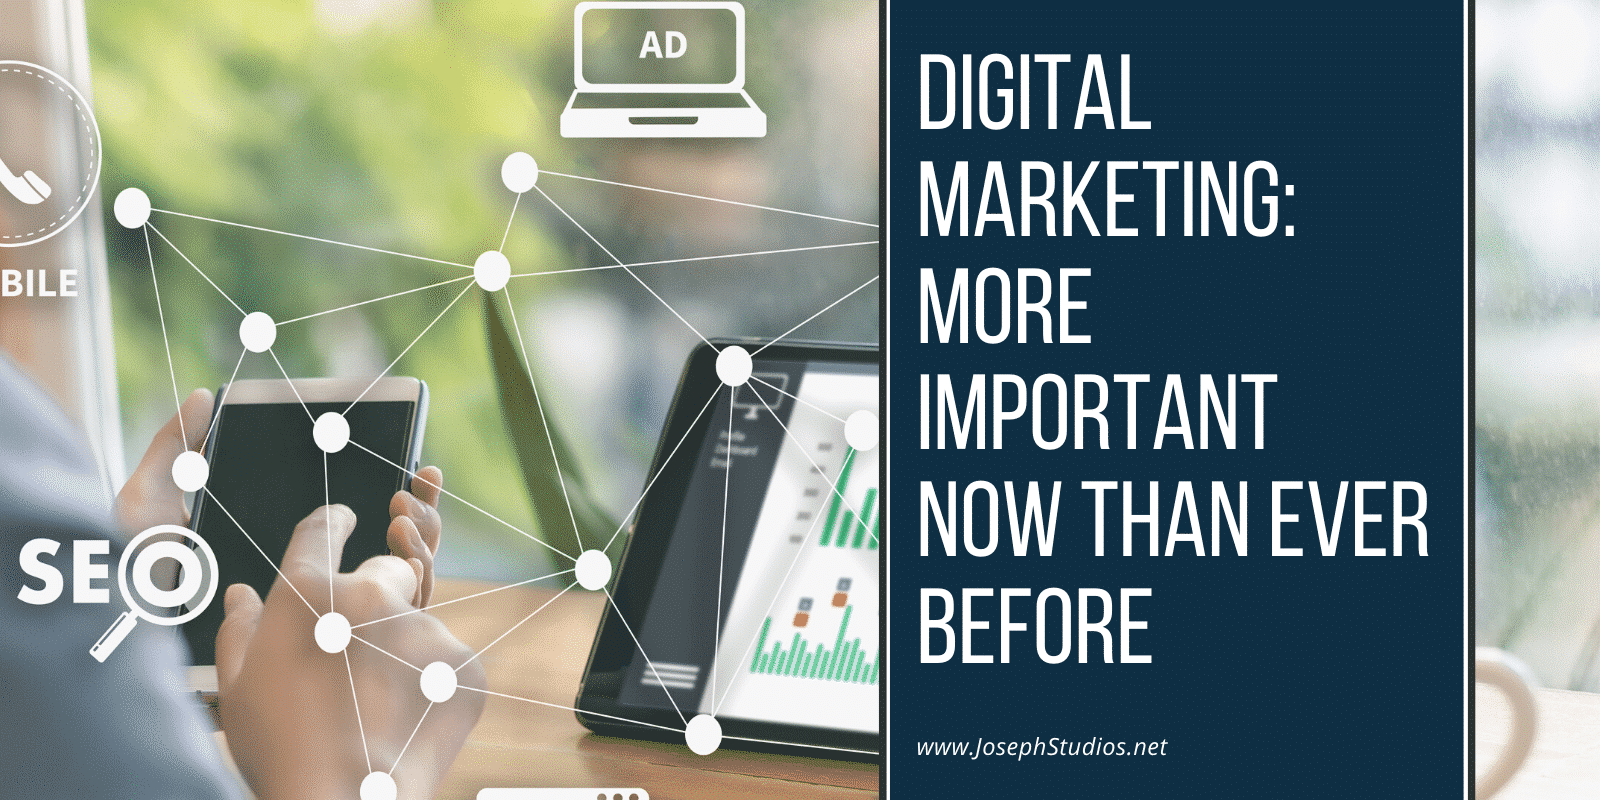 Digital Marketing Is Now Important Than Ever, Digital Marketing: More Important Now Than Ever Before